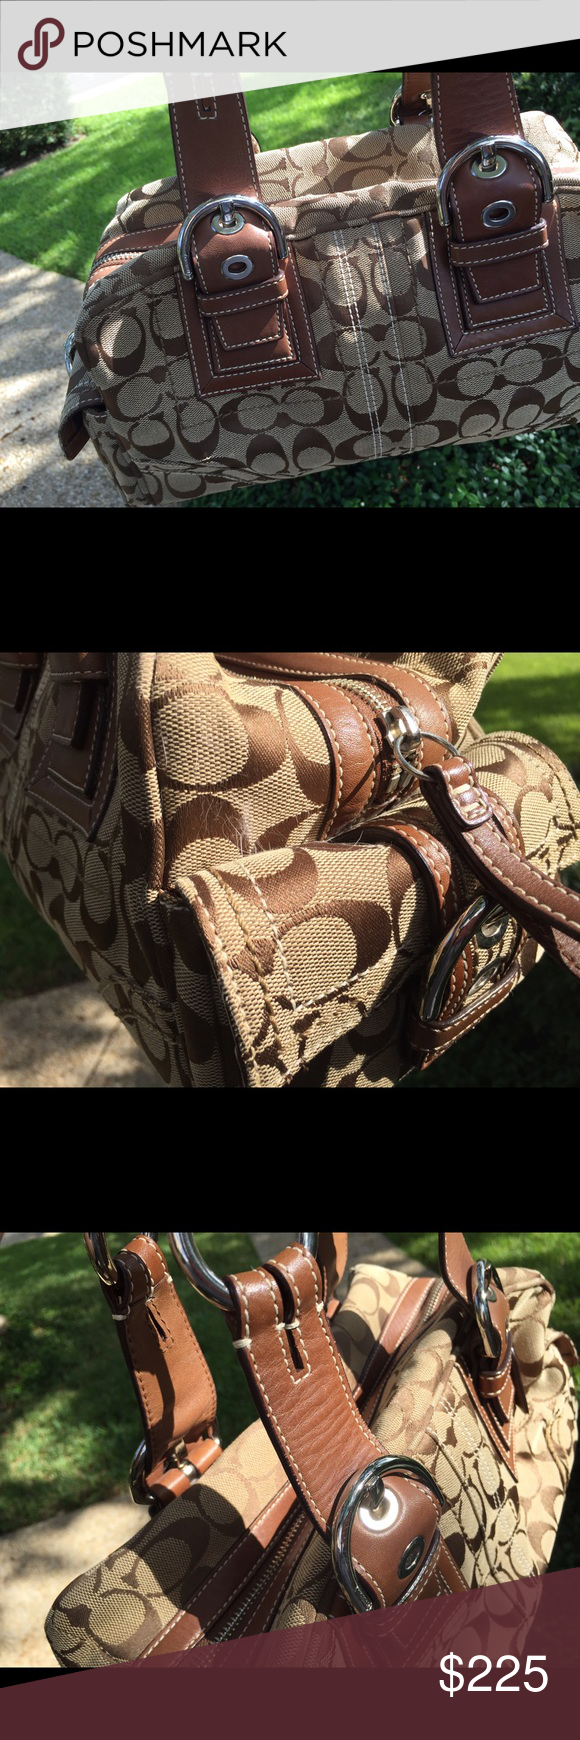 COACH Signature Satchel Handbag Canvas x Leather COACH Signature Satchel Handbag Canvas x Leather K0673-10078 MINT condition – never used & hard to find!  Color / Material  Khaki x Brown / Canvas x Leather  Size [inch] *W:11.81in x H:6.3in x D:6.3in *Handle:19.68in ~ 21.65in (2holes both sides)  Size [cm] *W:30cm x H:16cm x D:16cm *Handle:50cm ~ 55cm (2holes both sides)  Weight Approx. 920 g  * Zipper Closure  Pocket (inside) *1 Zipper pocket *2 Pockets *1 D Ring (outside) *2 Magnet button pockets *1 Brand name tag  Product Code 10078 Coach Bags Shoulder Bags